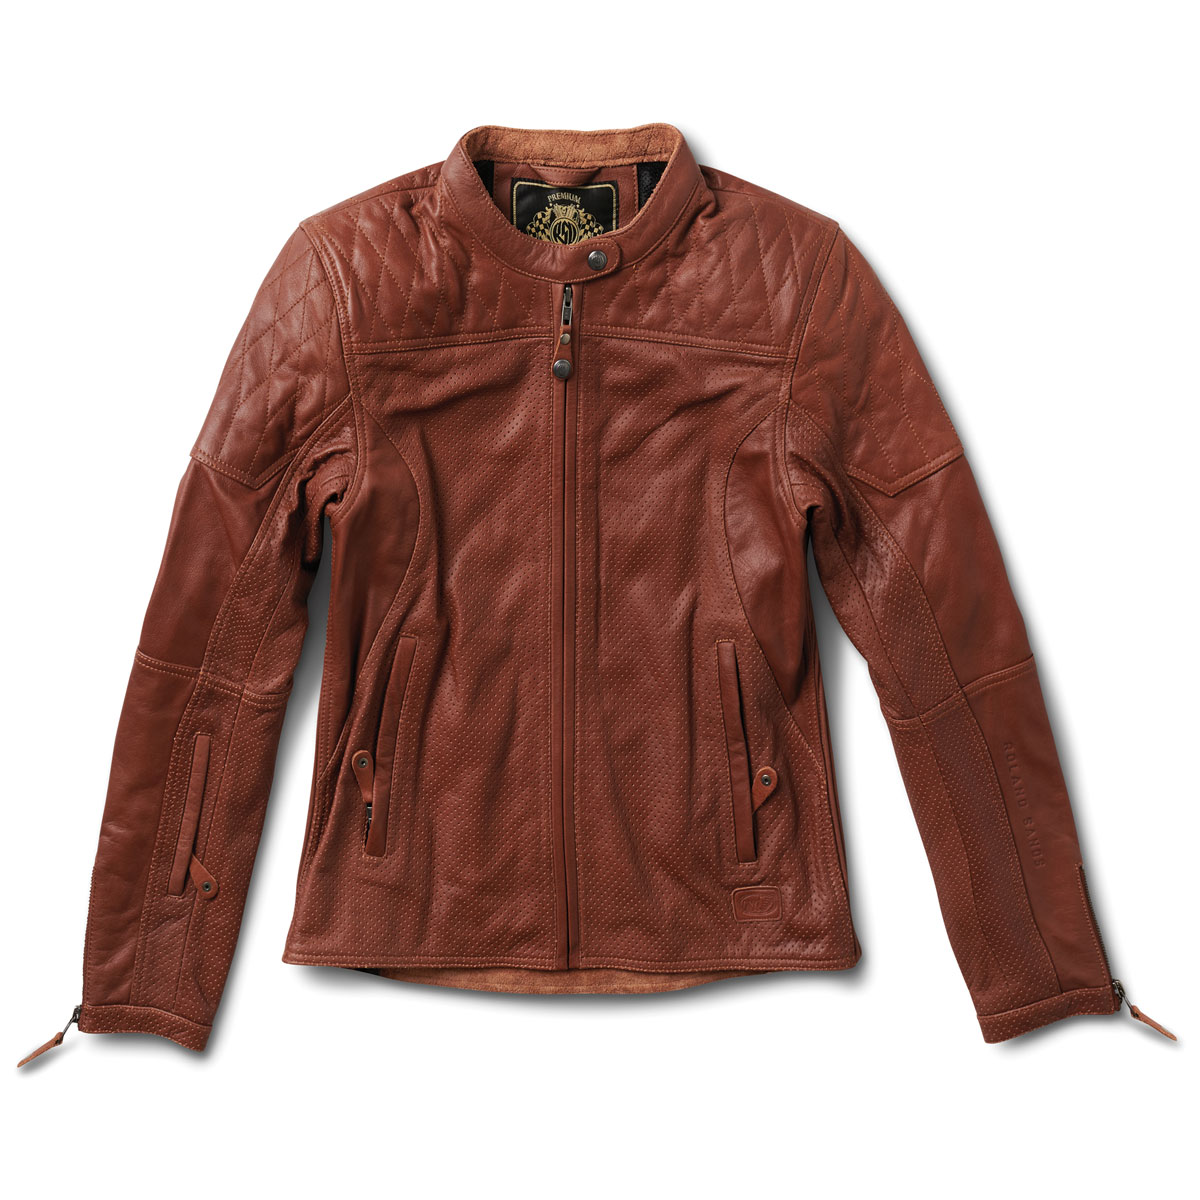 Roland Sands Design Apparel Women's Trinity Brown Perforated Leather Jacket